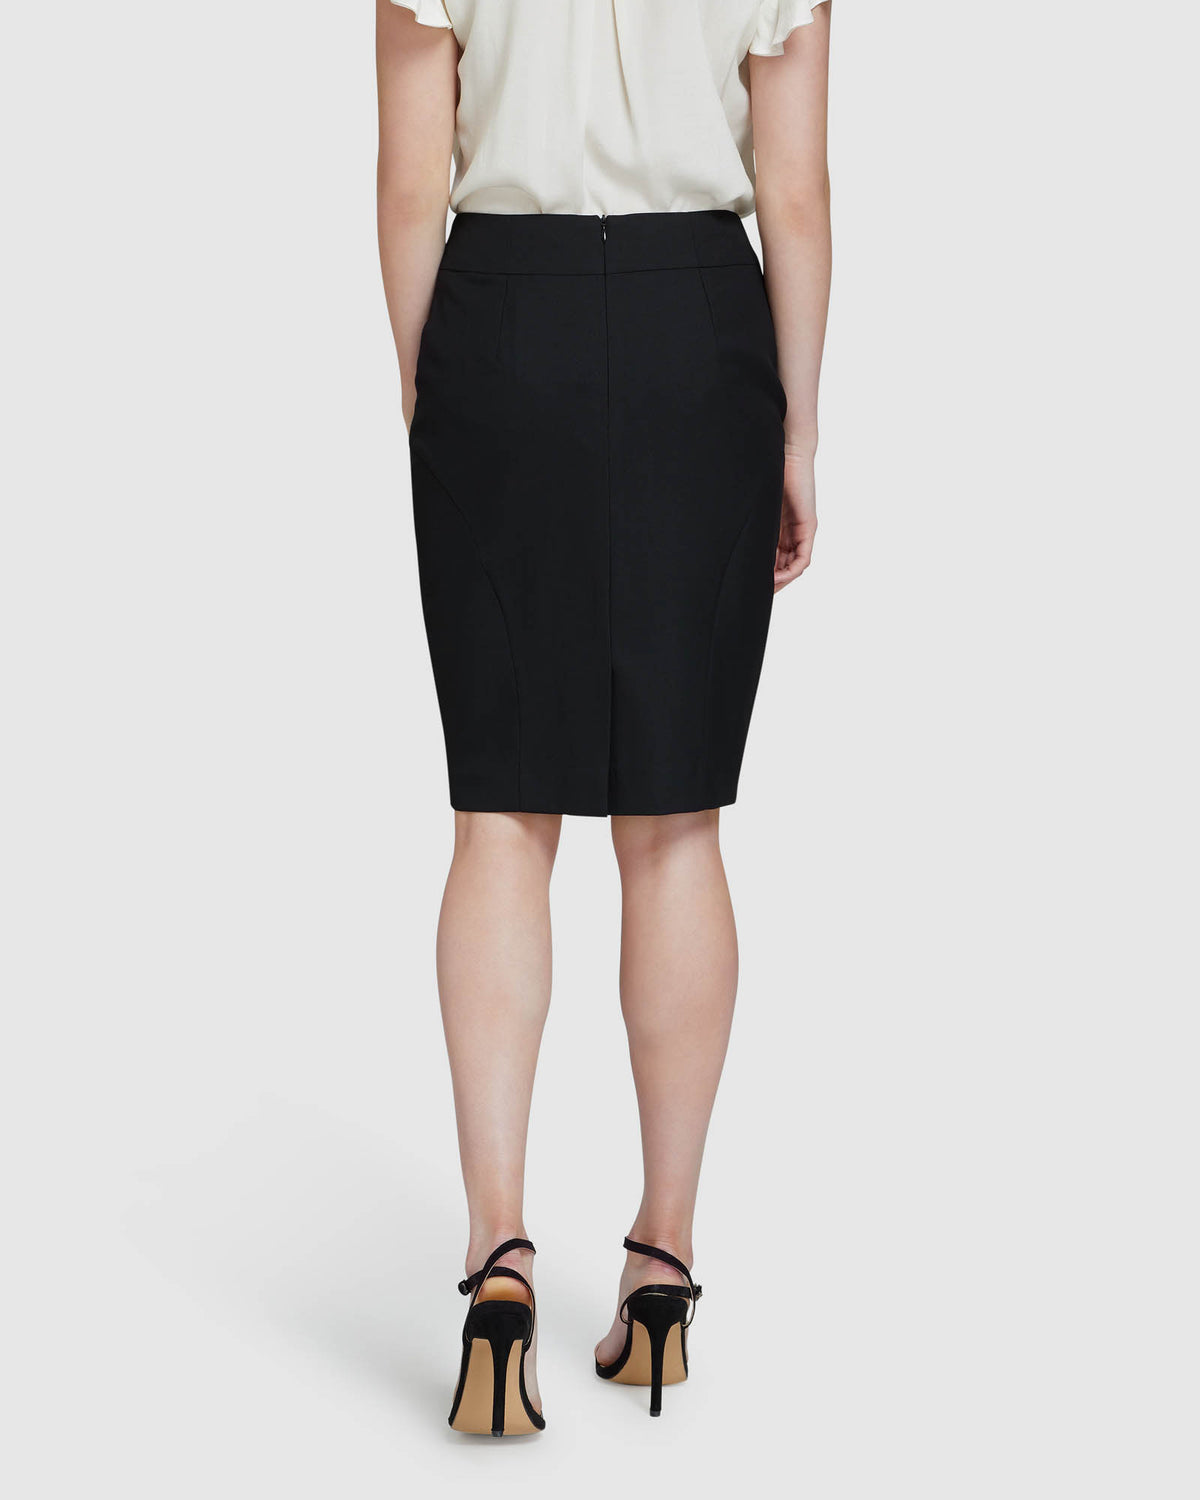 MONROE ECO SUIT SKIRT BLACK